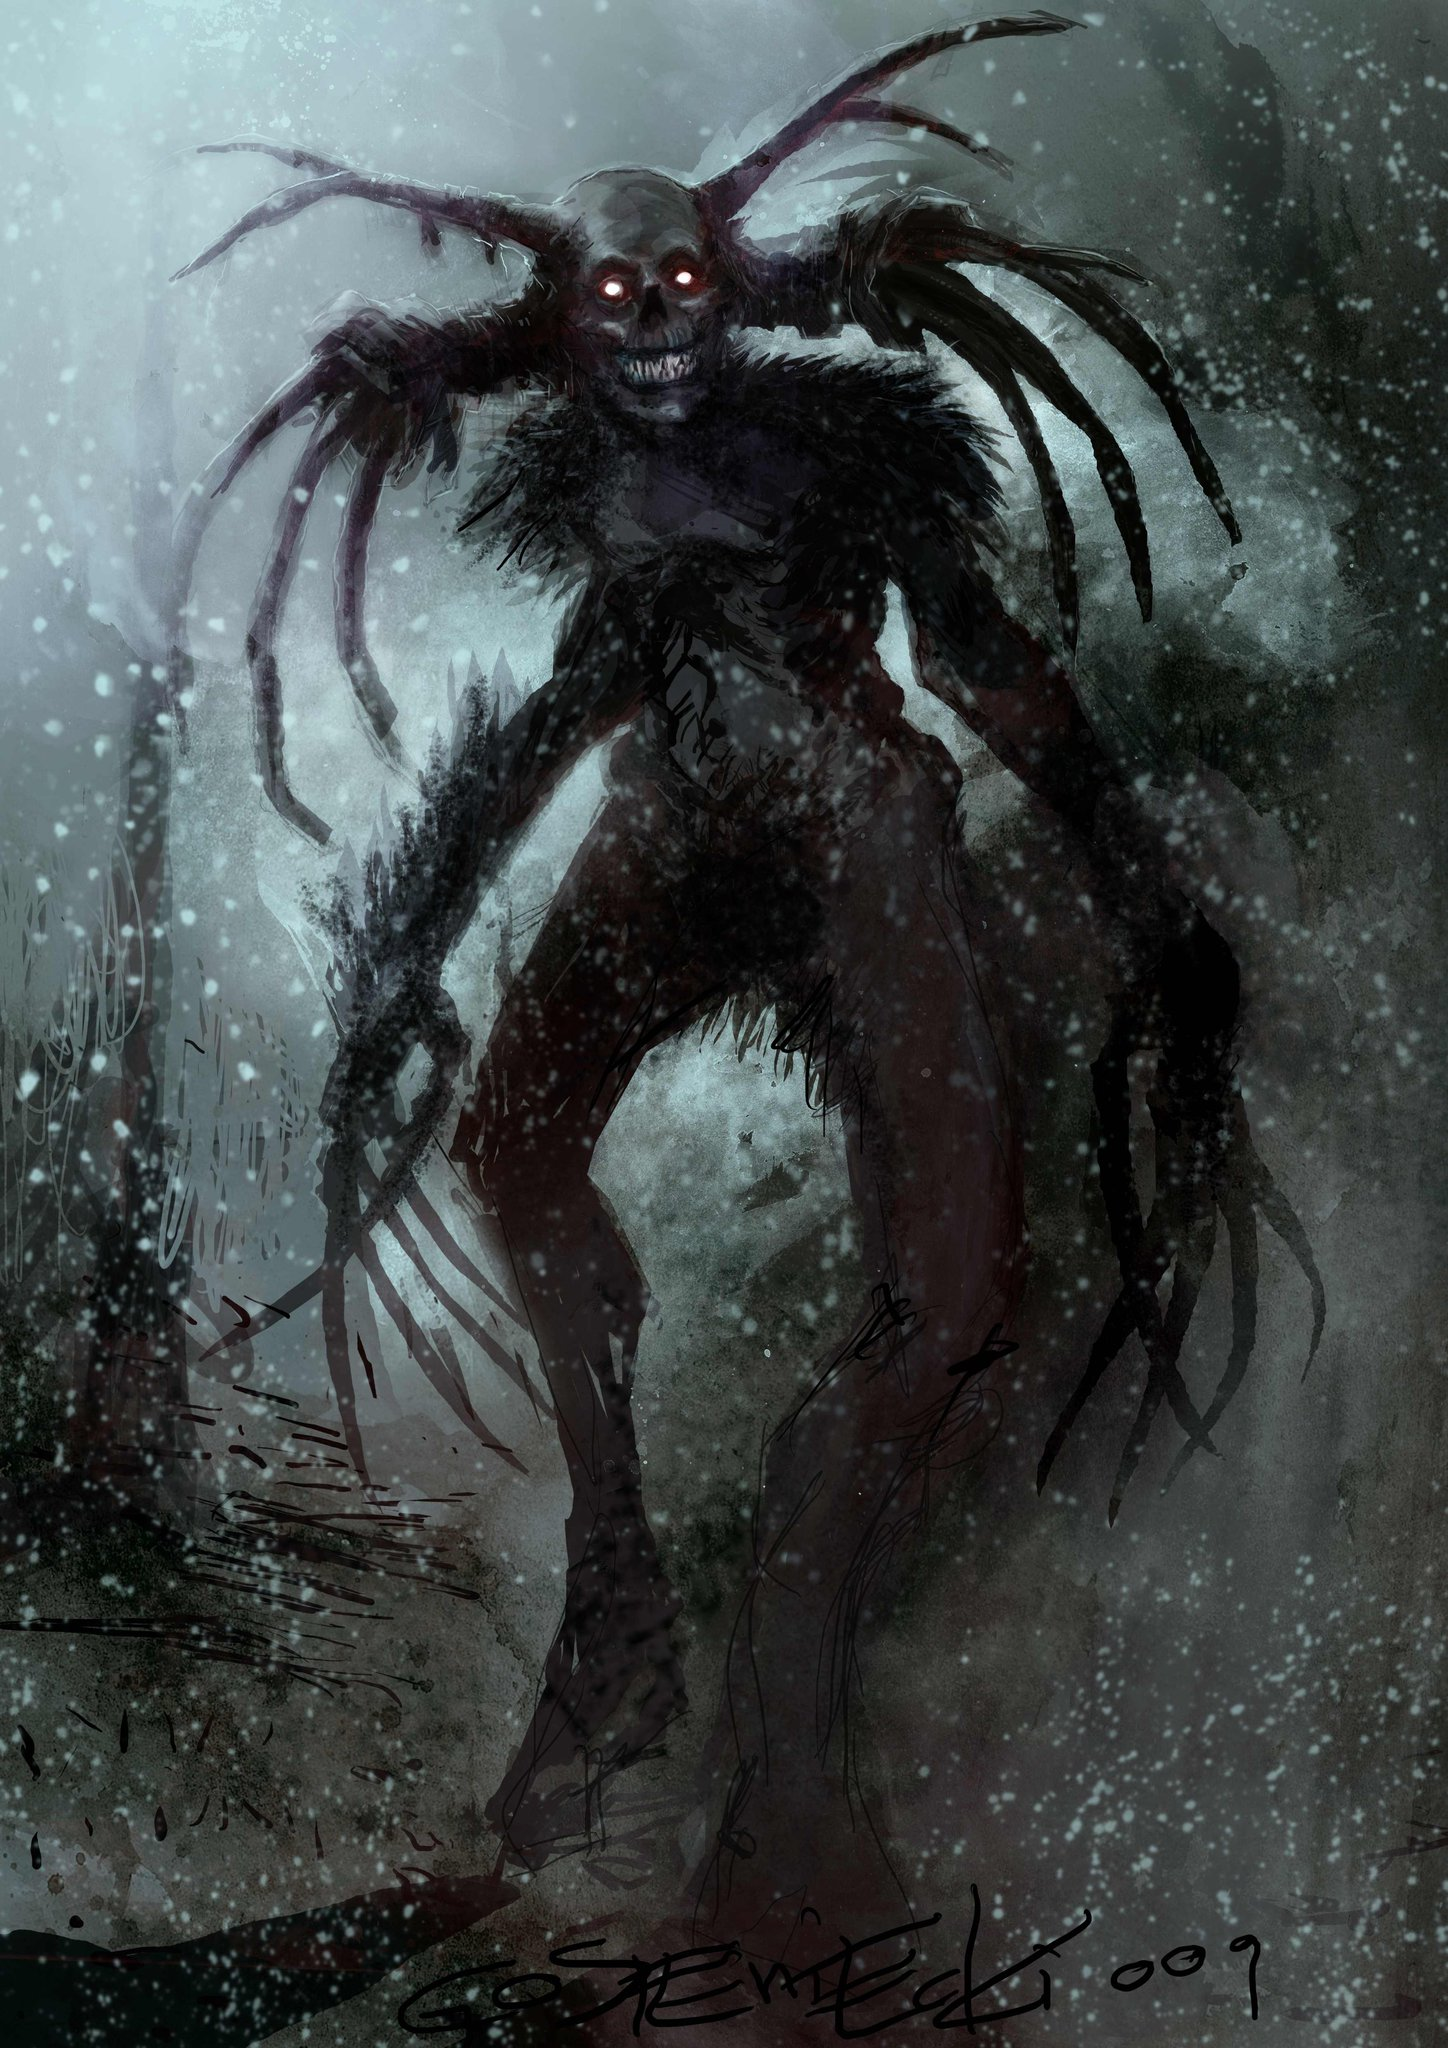 Do Get Terrified by This Shadows of the Damned Concept Art